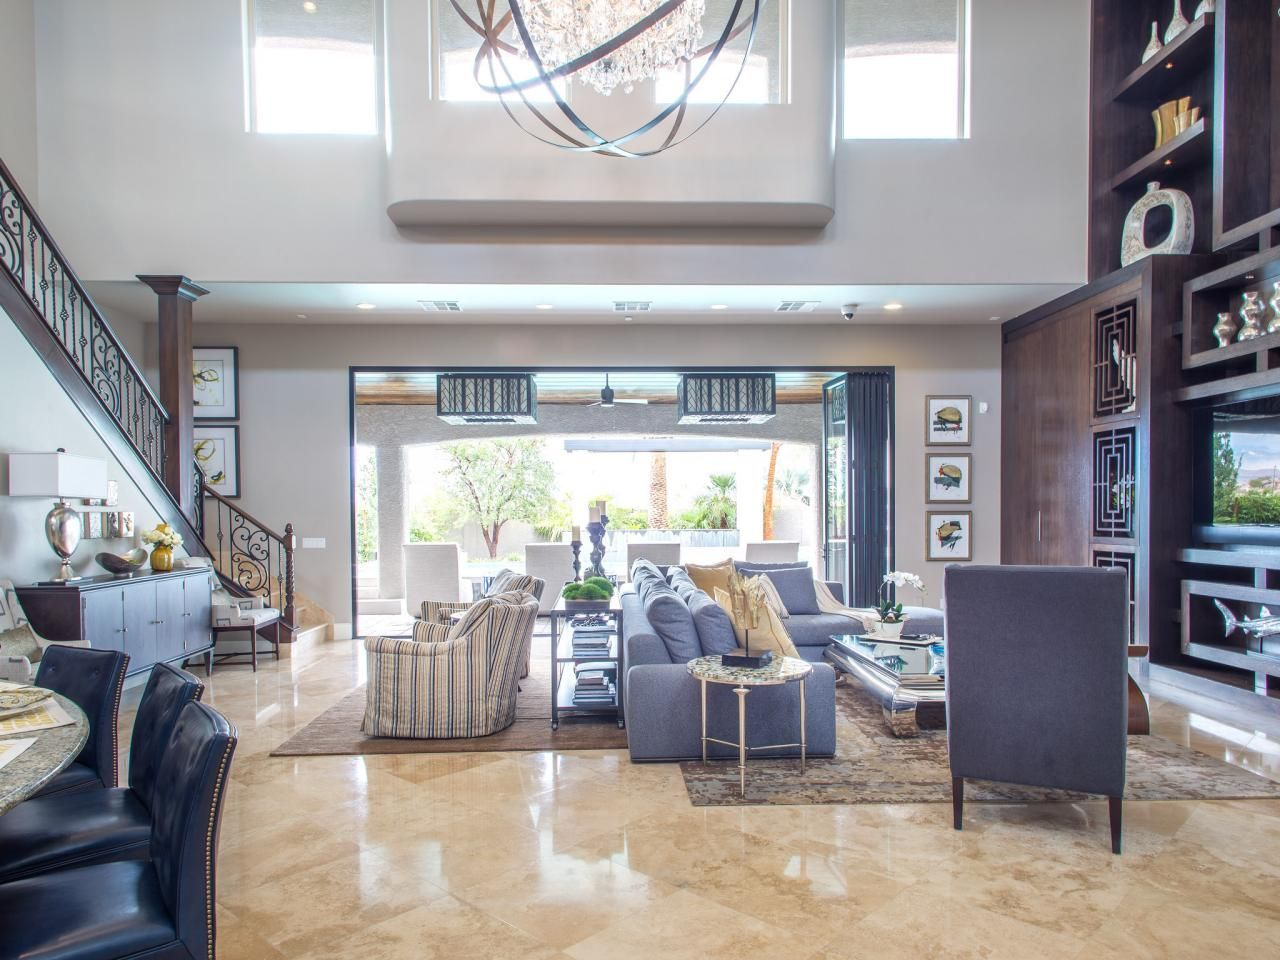 Before and after the property brothers 39 las vegas home - Hgtv before and after living rooms ...